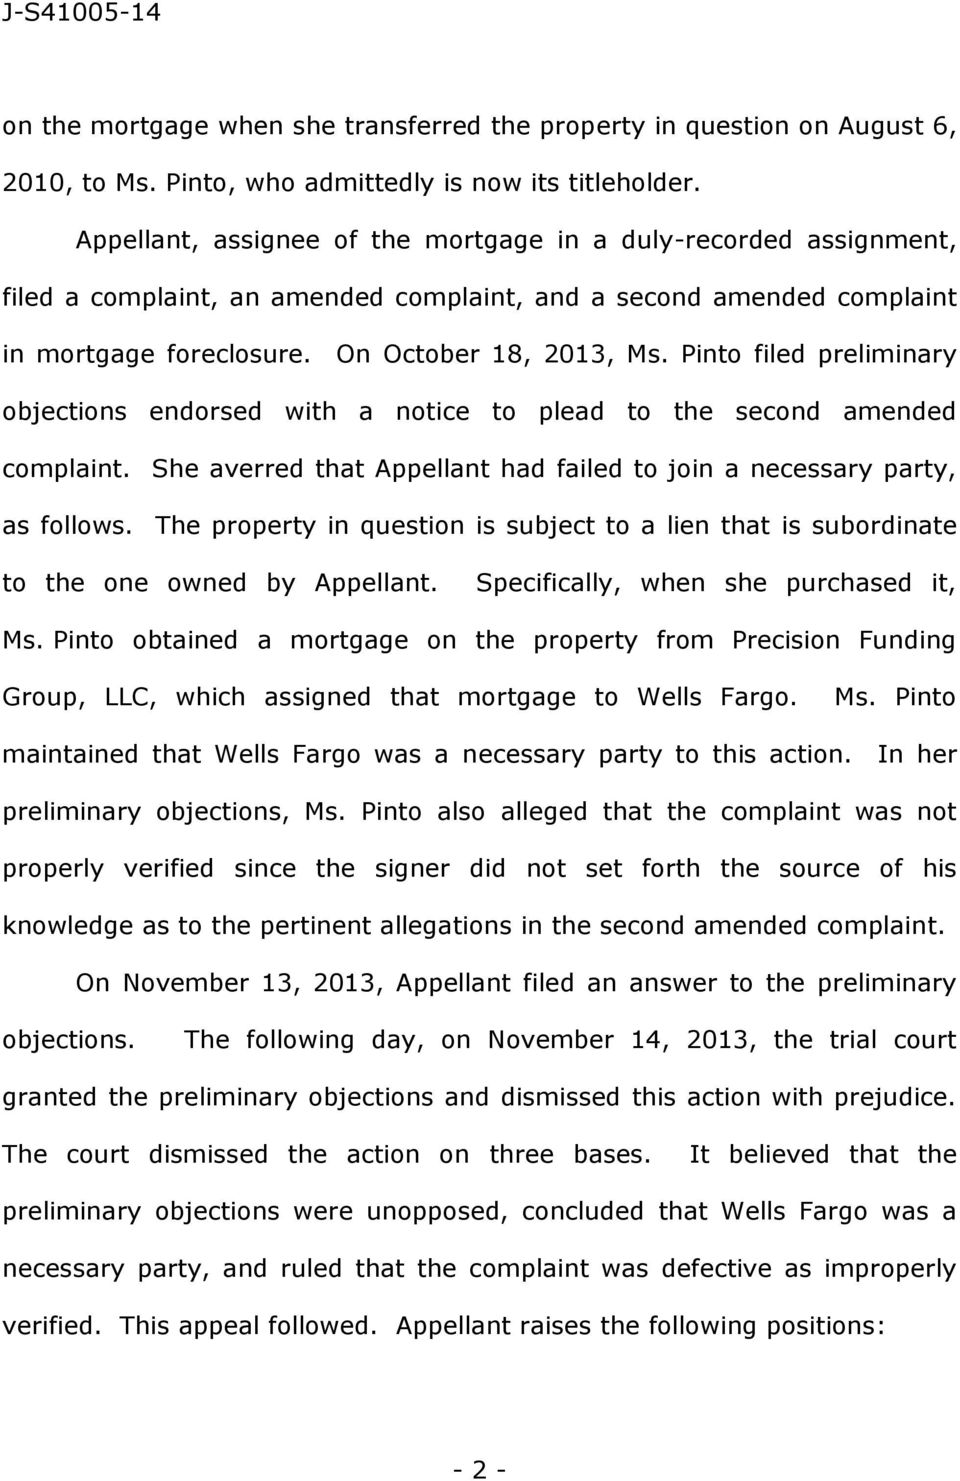 Pinto filed preliminary objections endorsed with a notice to plead to the second amended complaint. She averred that Appellant had failed to join a necessary party, as follows.